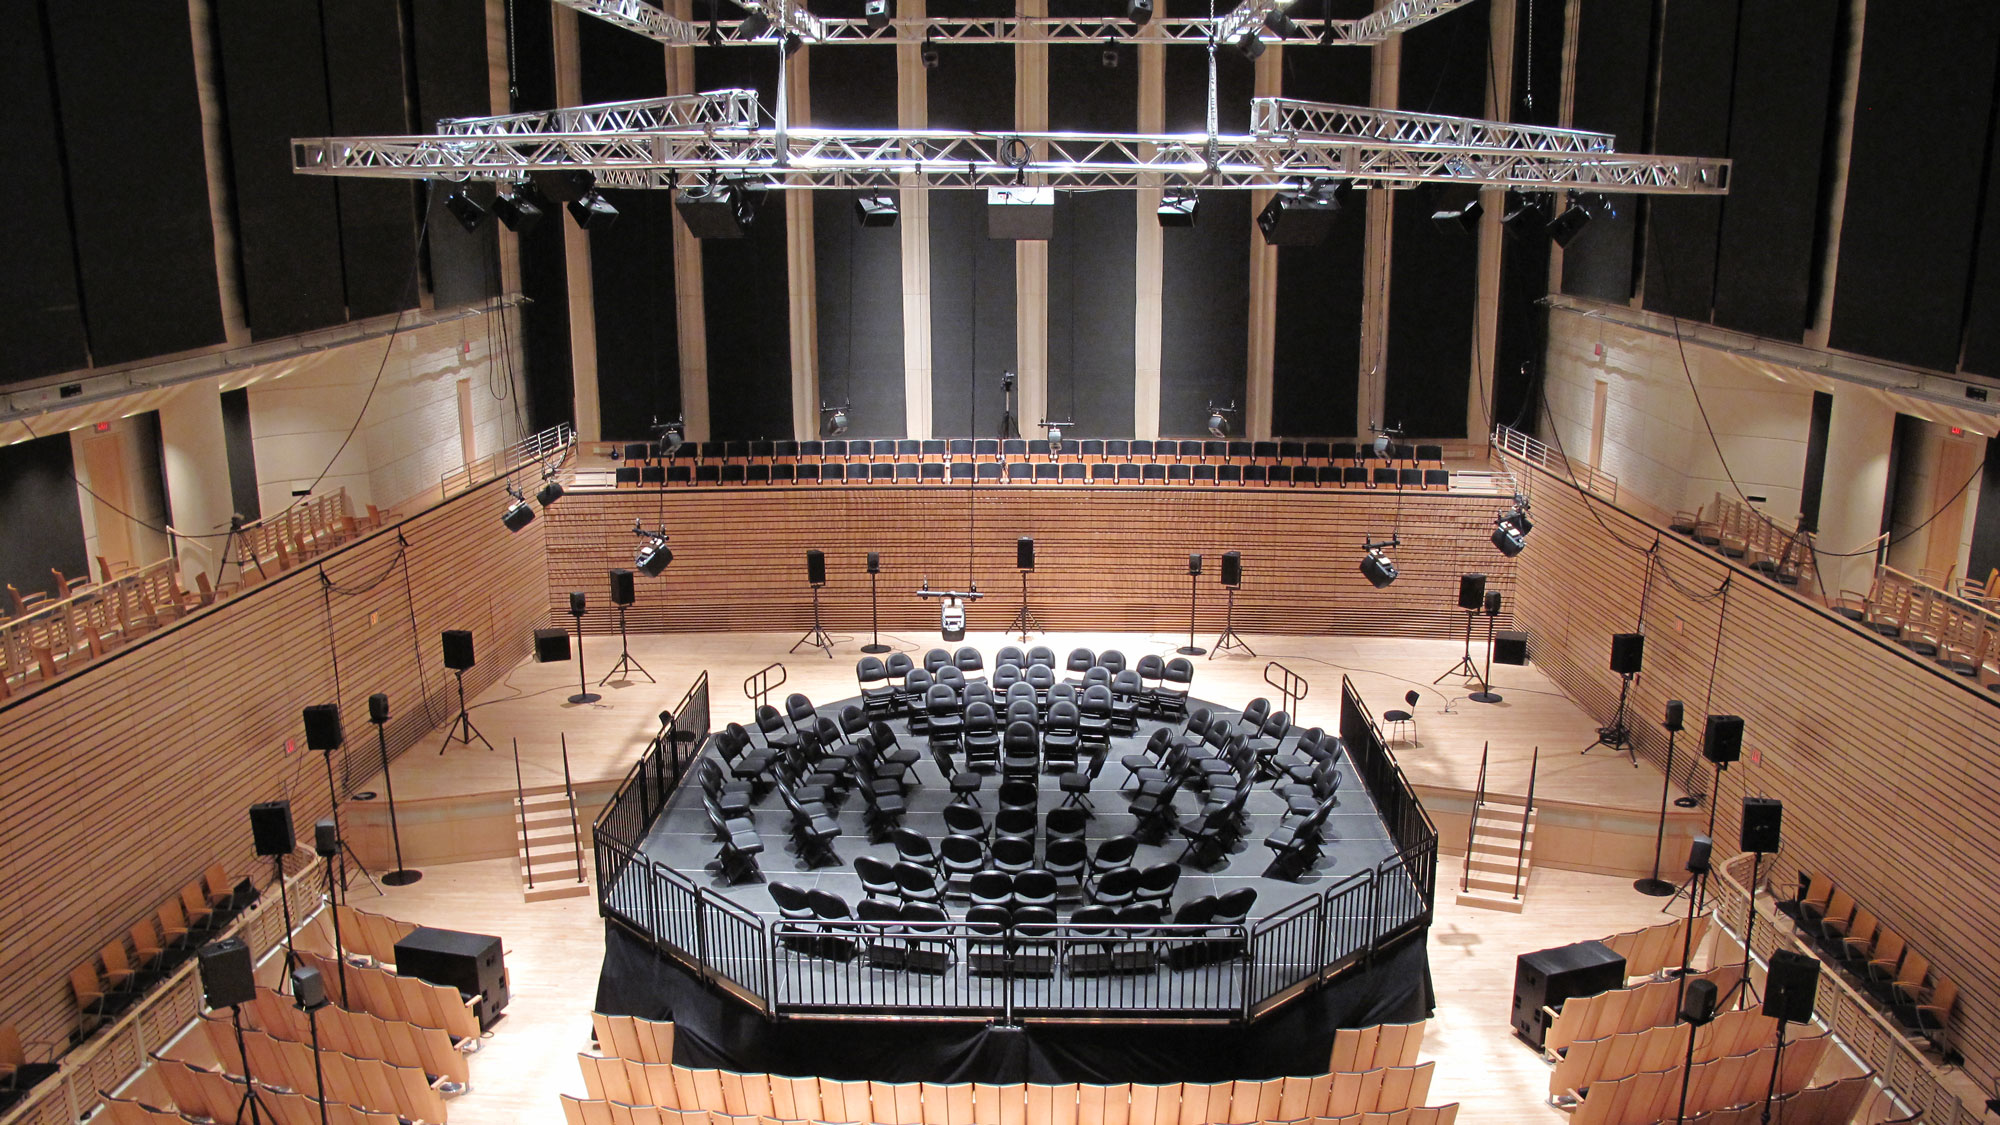 the concert hall setup for multichannel